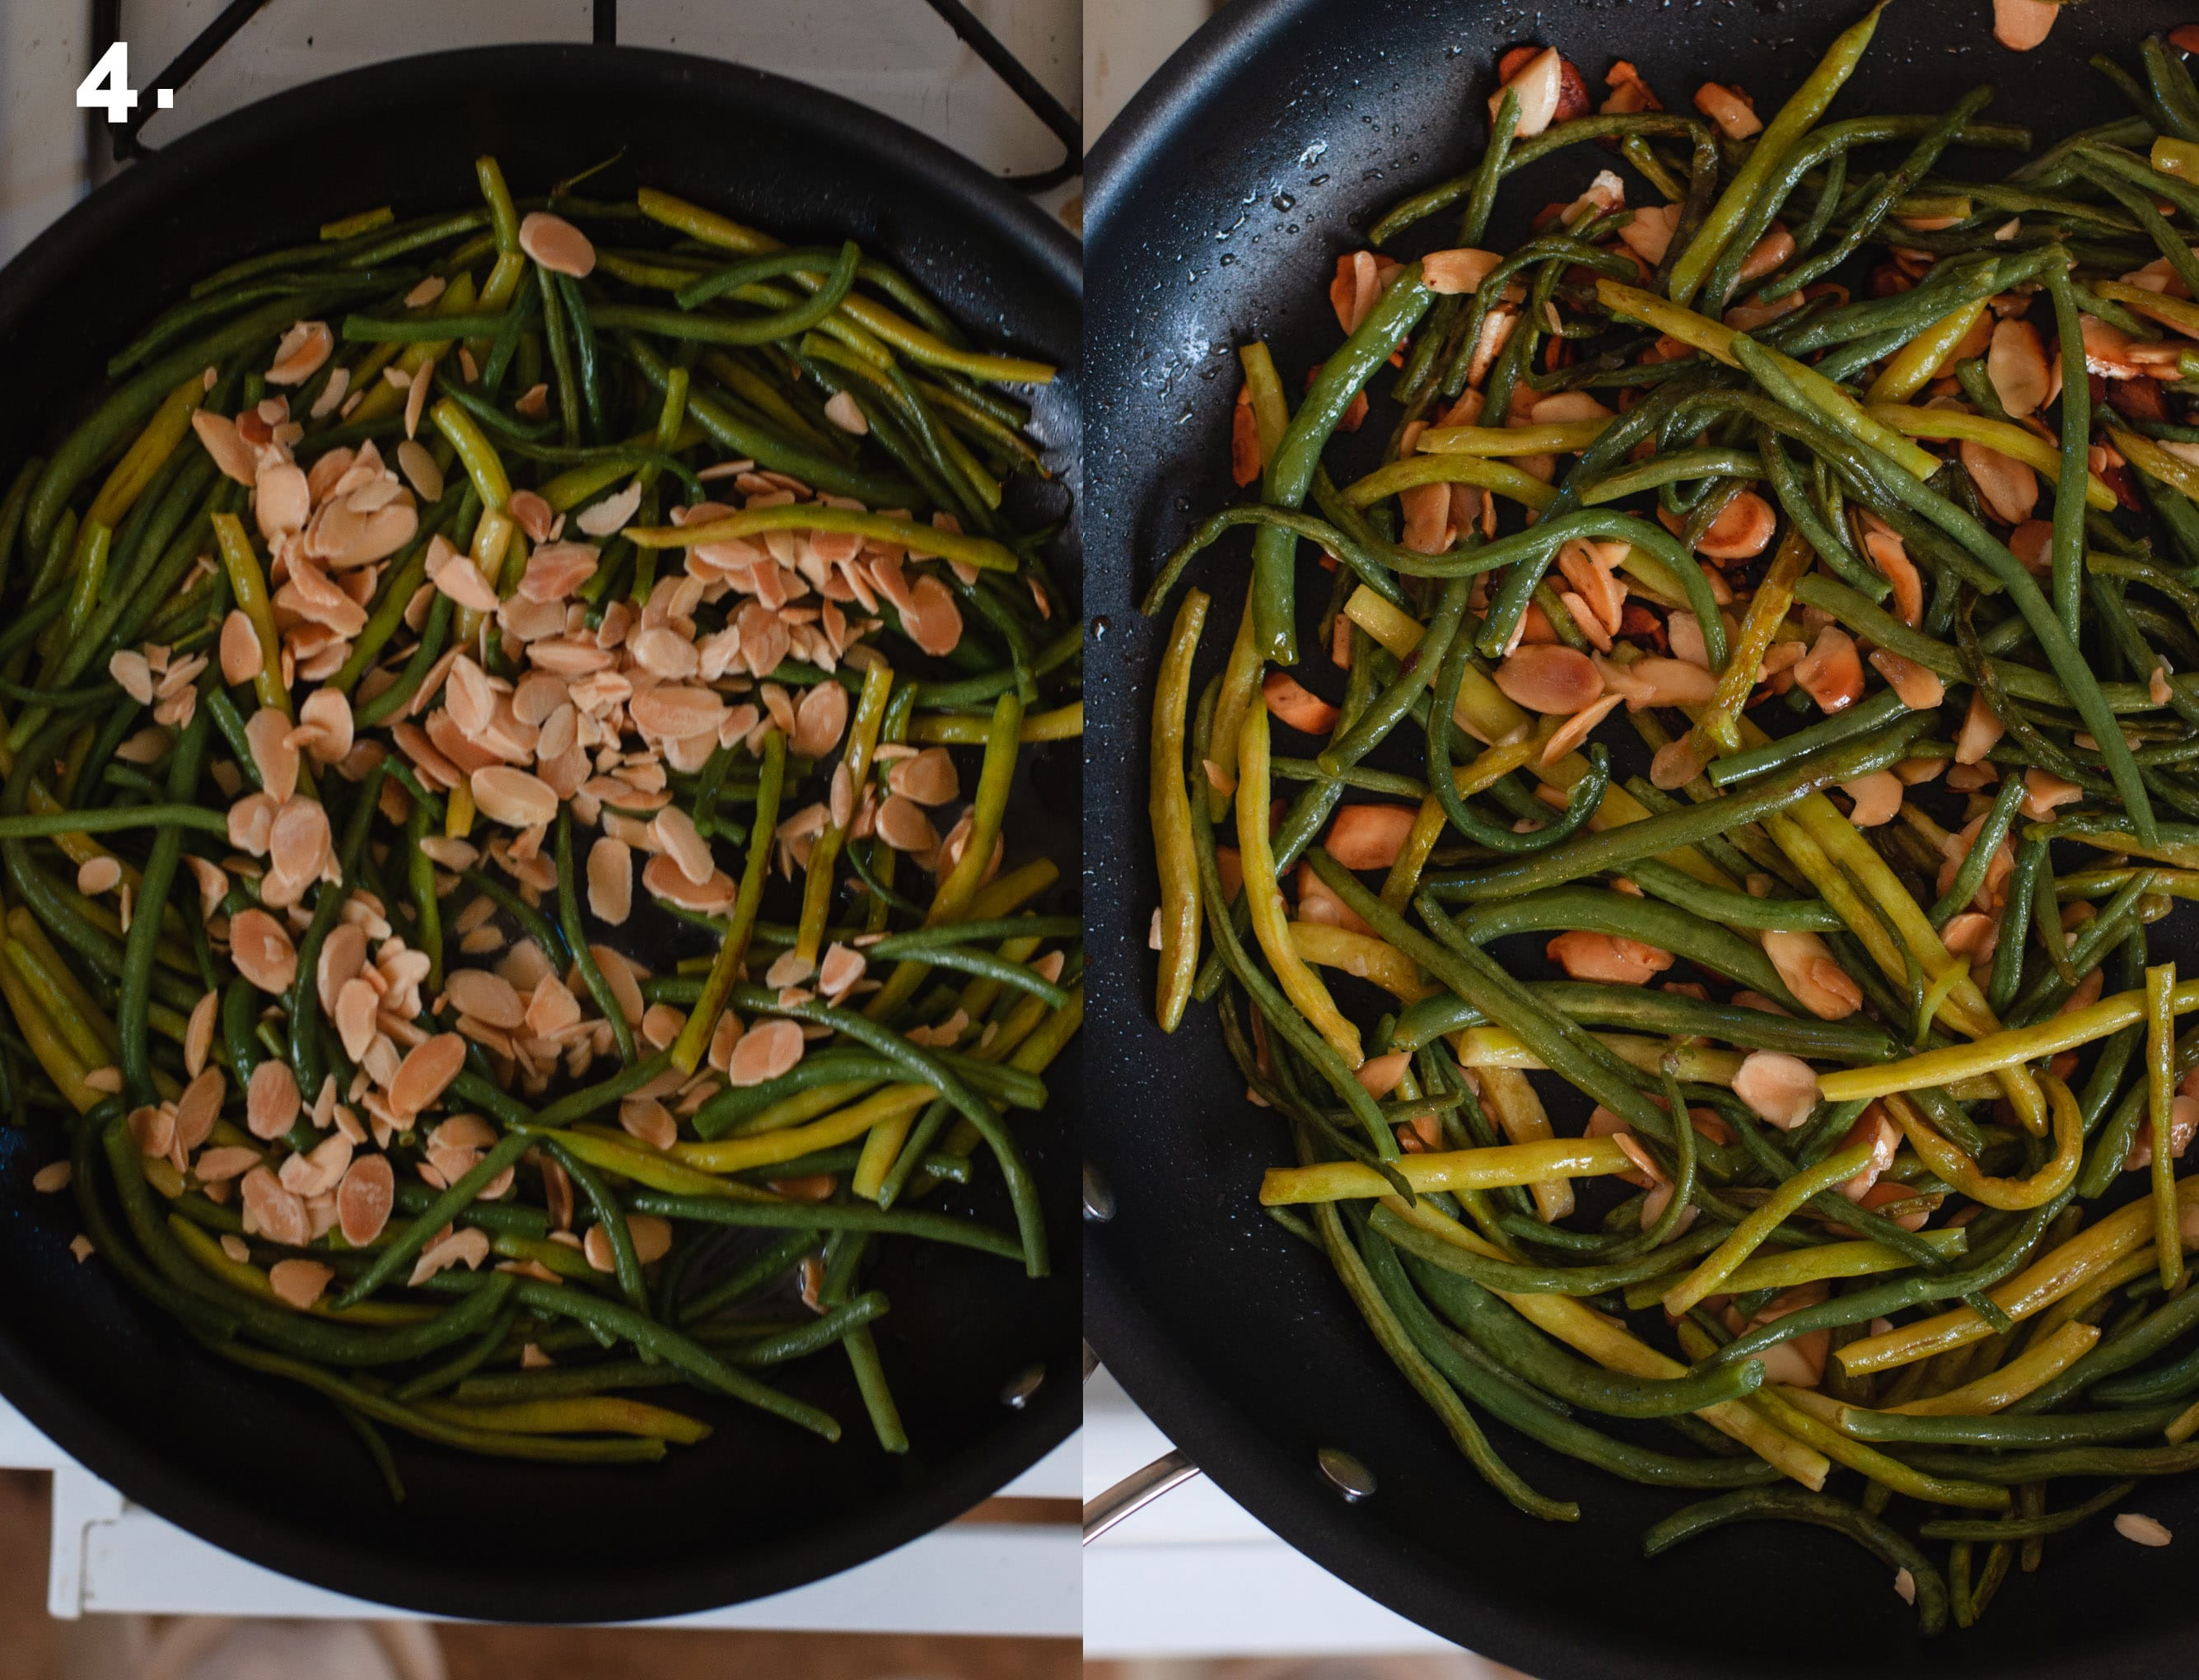 Step 4 showing green beans topped with sliced almonds